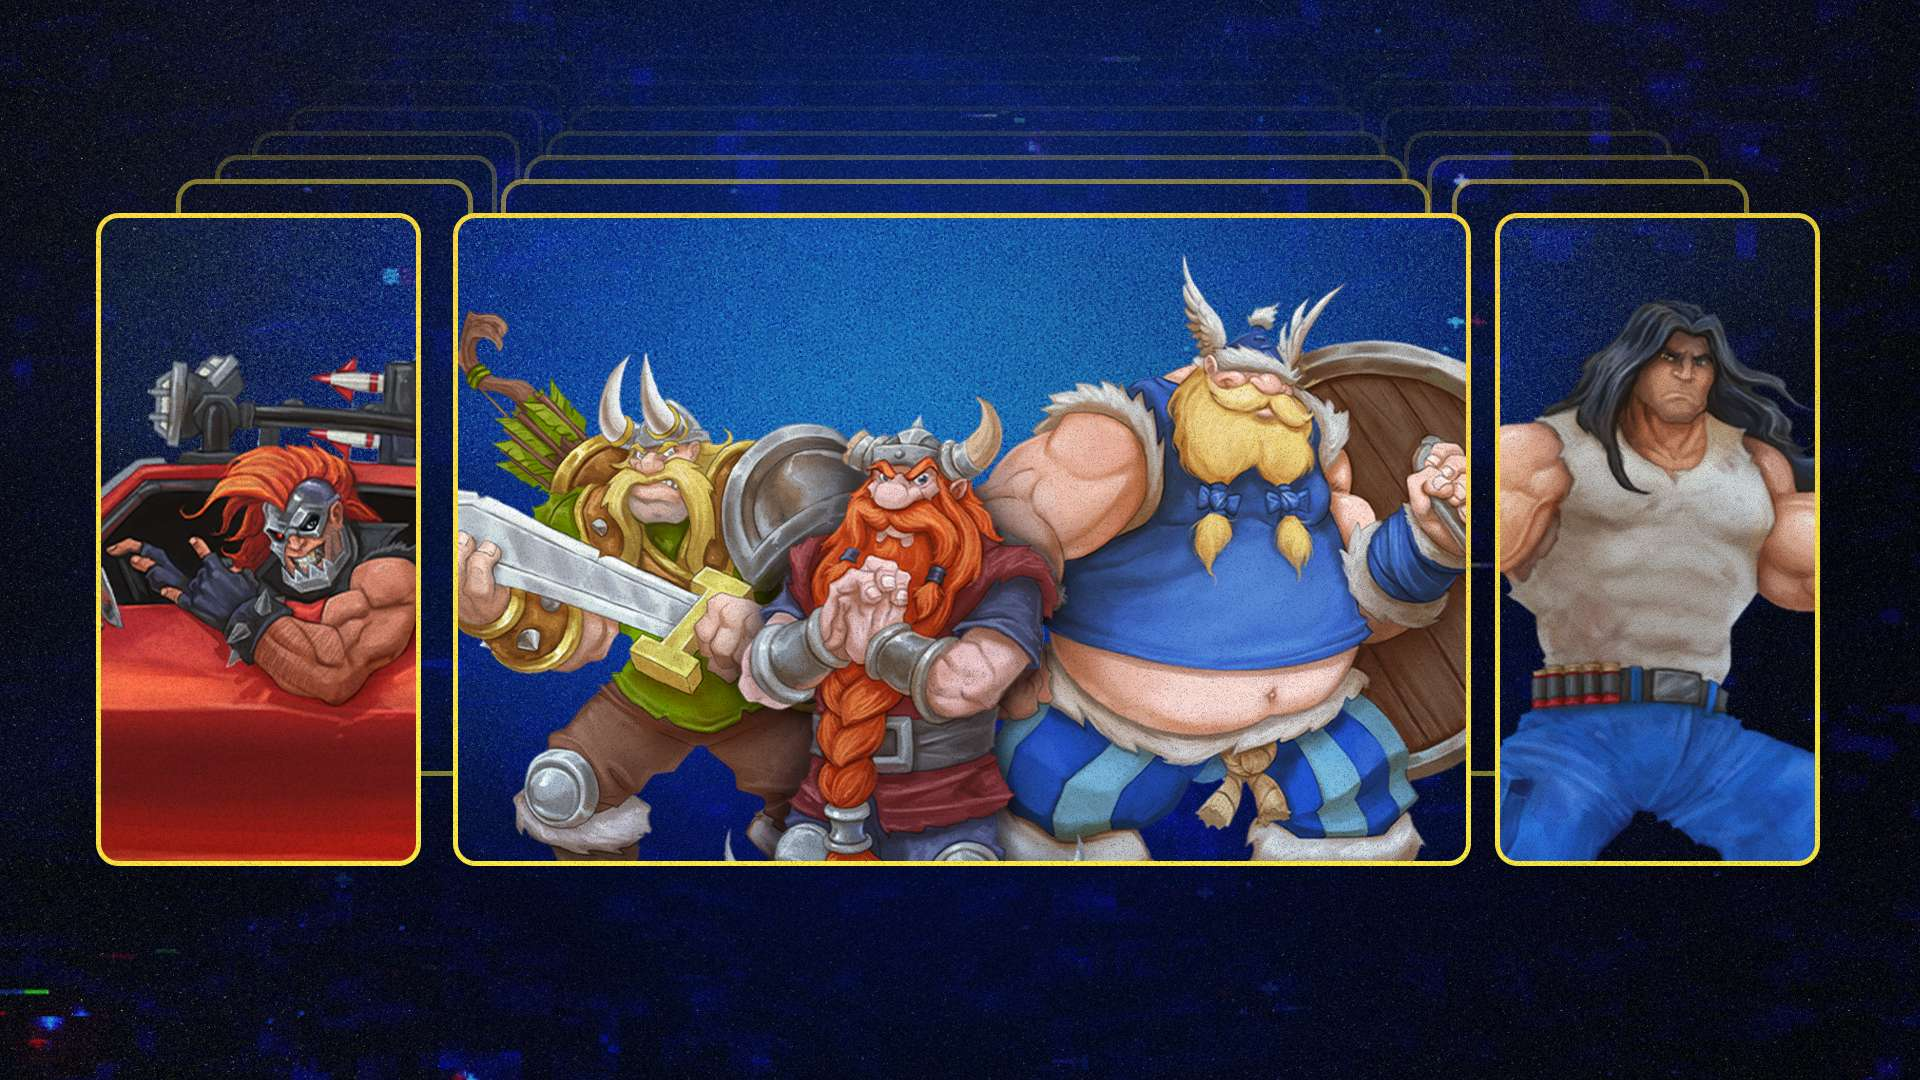 Blizzard Arcade Collection adds Lost Vikings 2 and RPM Racing